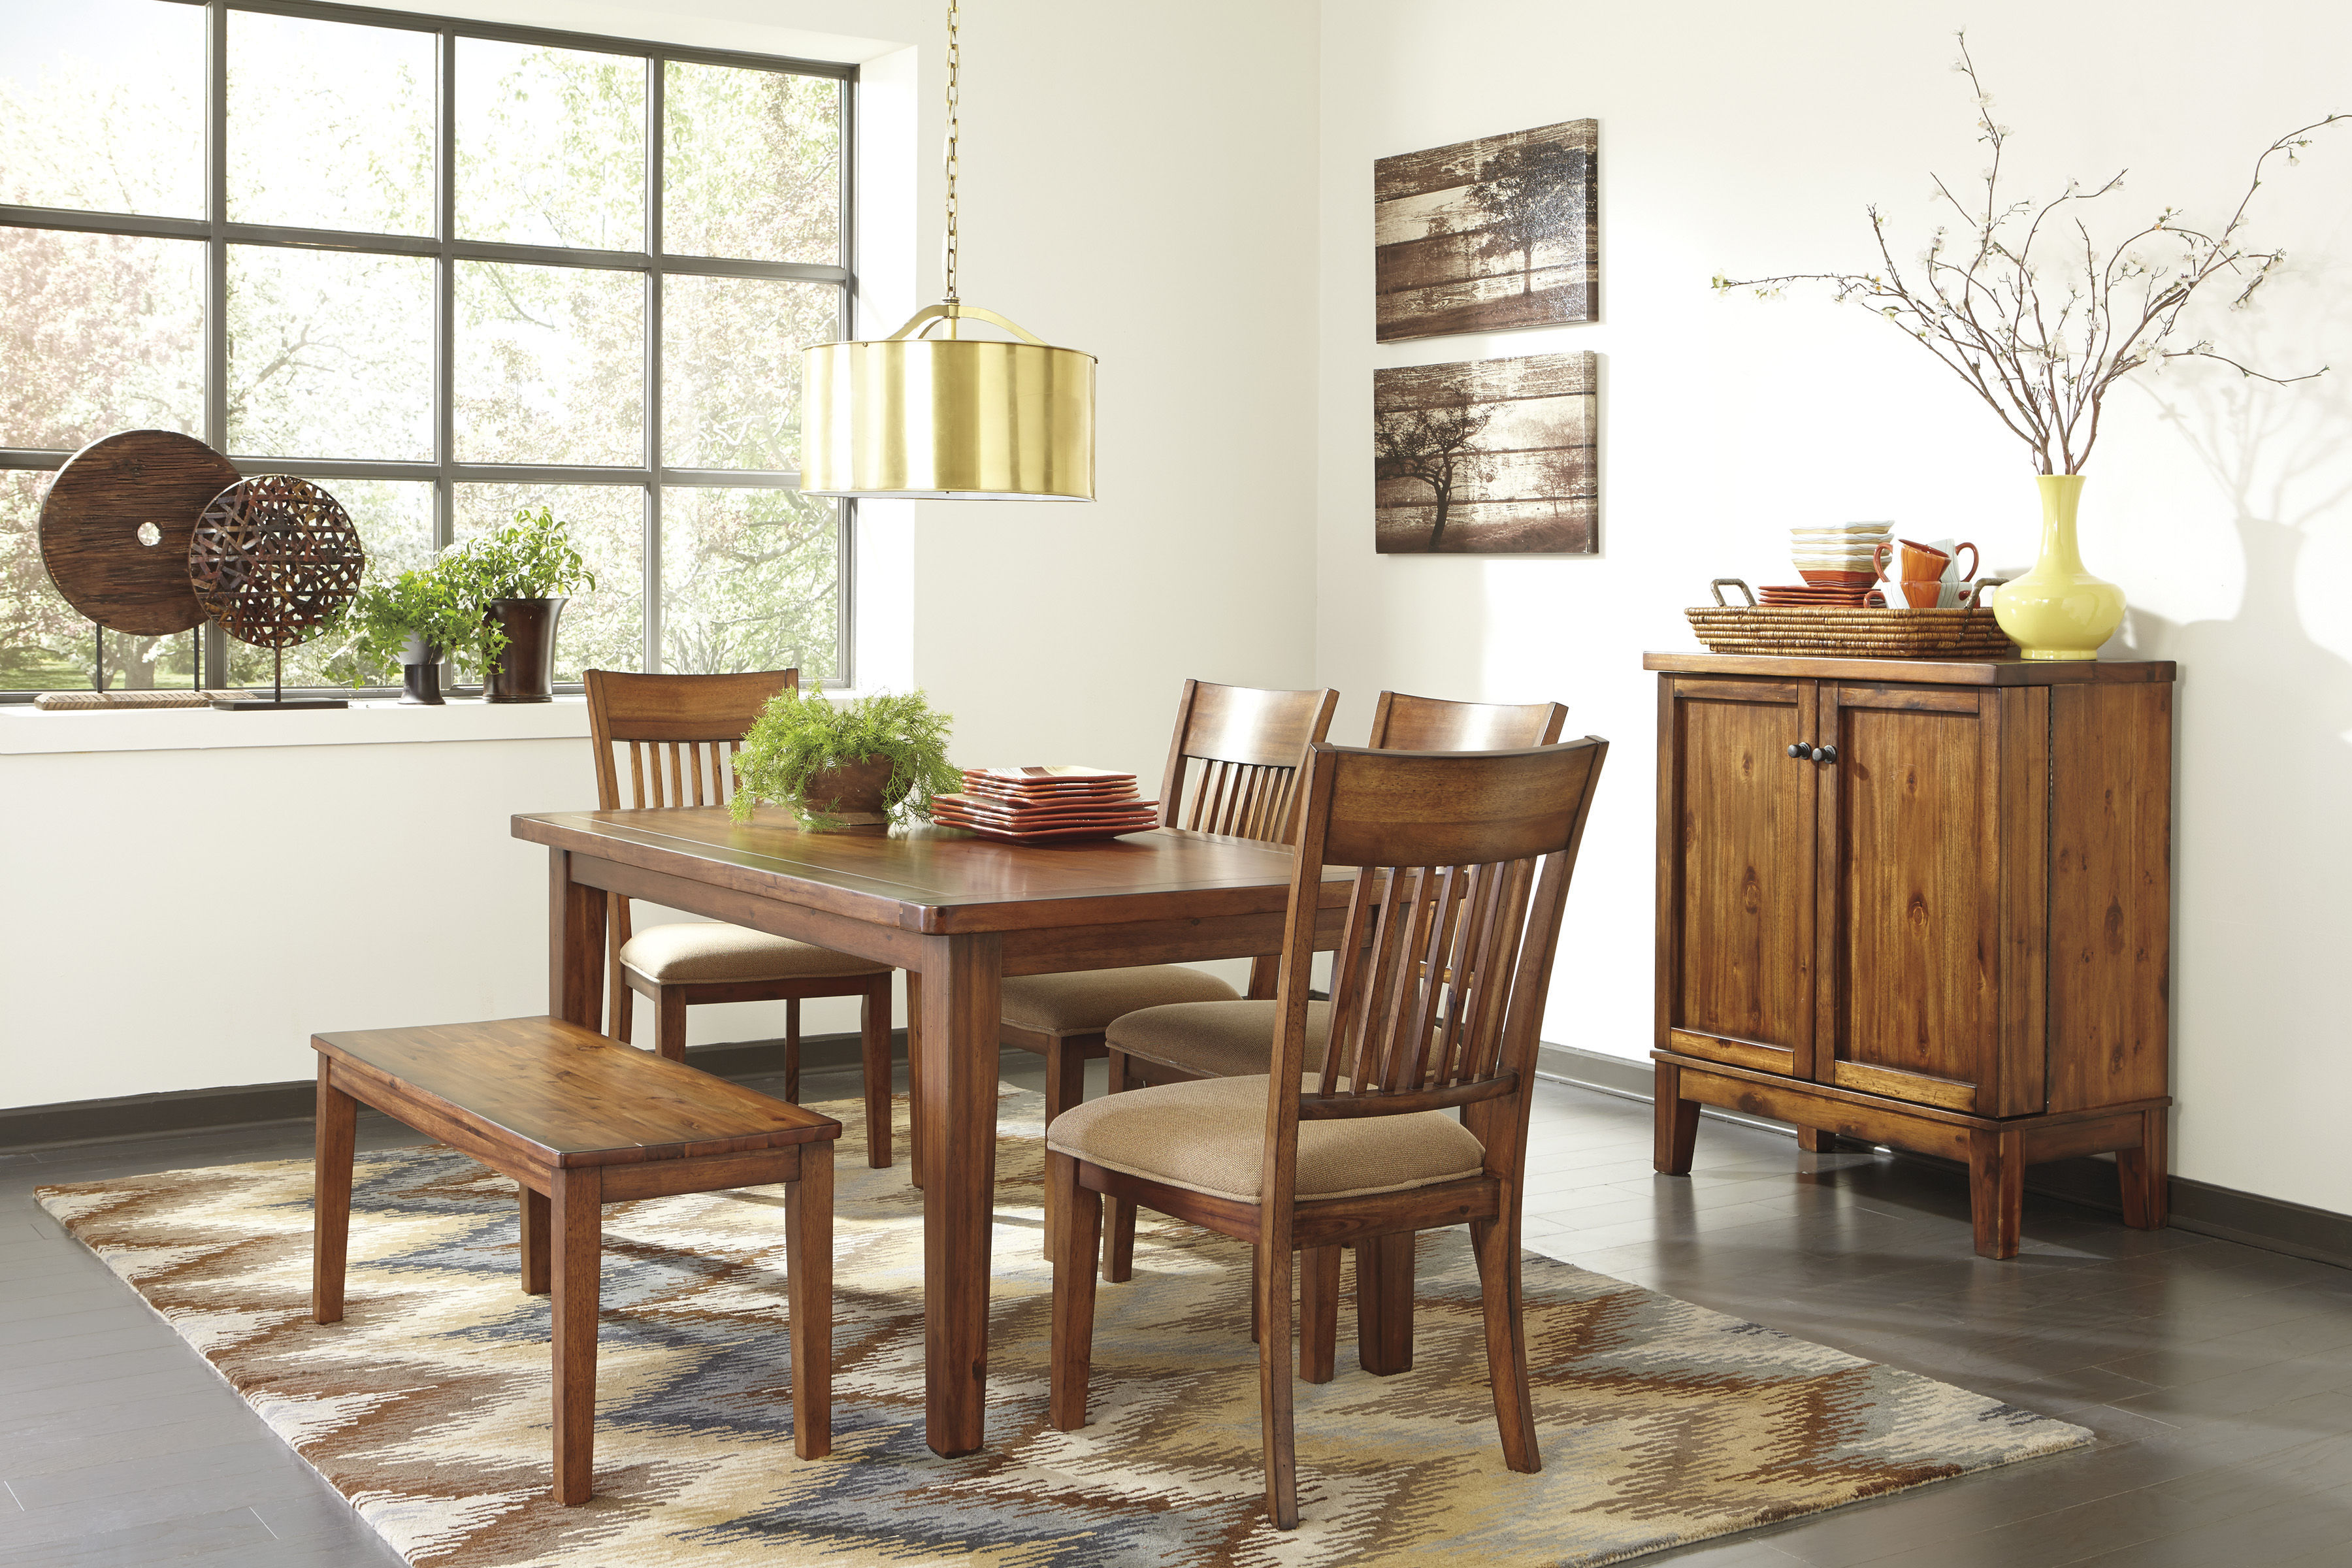 Shallibay light brown wood dining room set the classy for Best deals on dining room sets